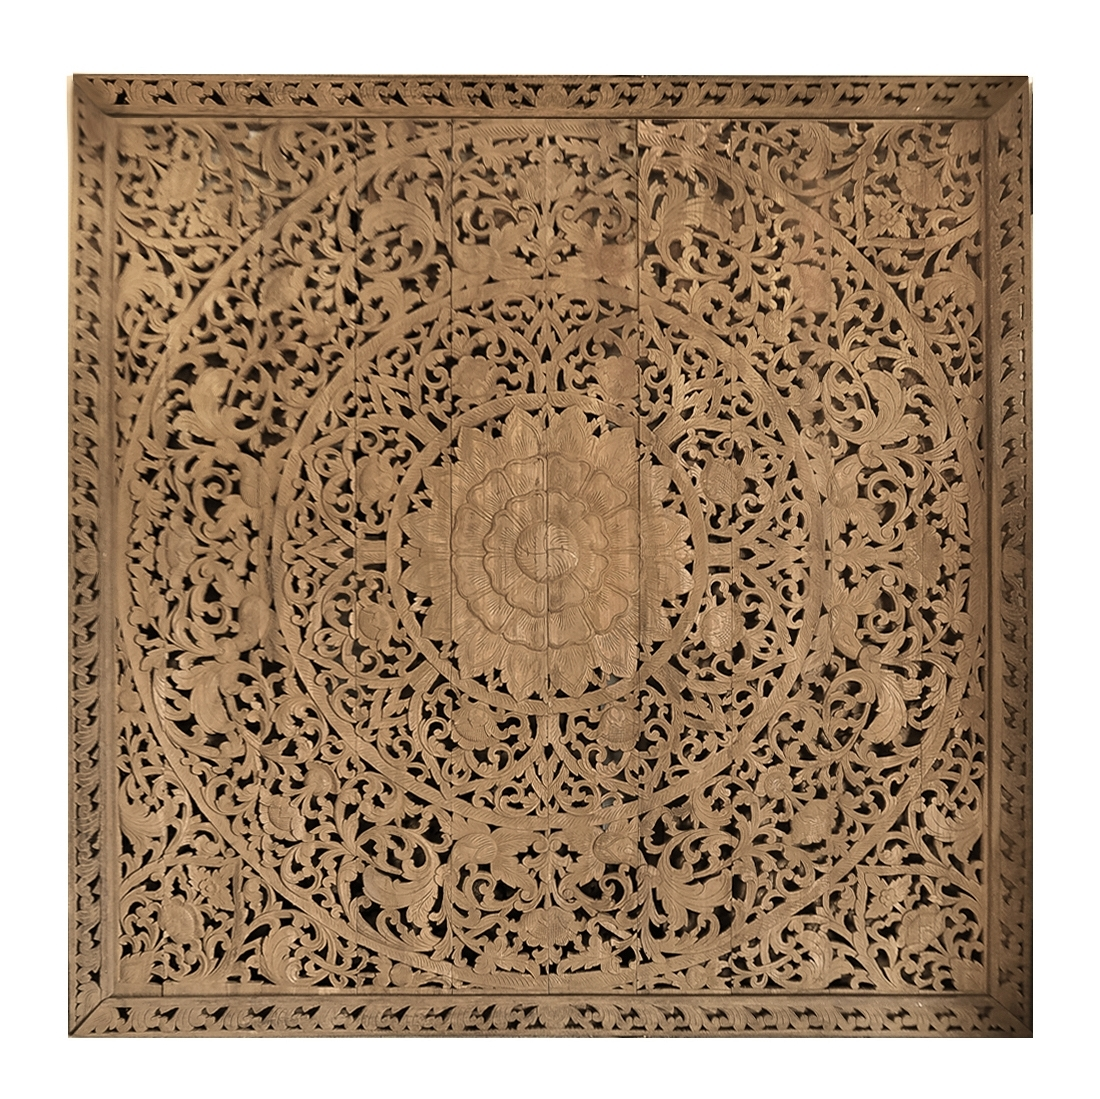 Buy Large Grand Carved Wooden Wall Art Or Ceiling Panel Online For Most Up To Date Wood Carved Wall Art (View 6 of 20)